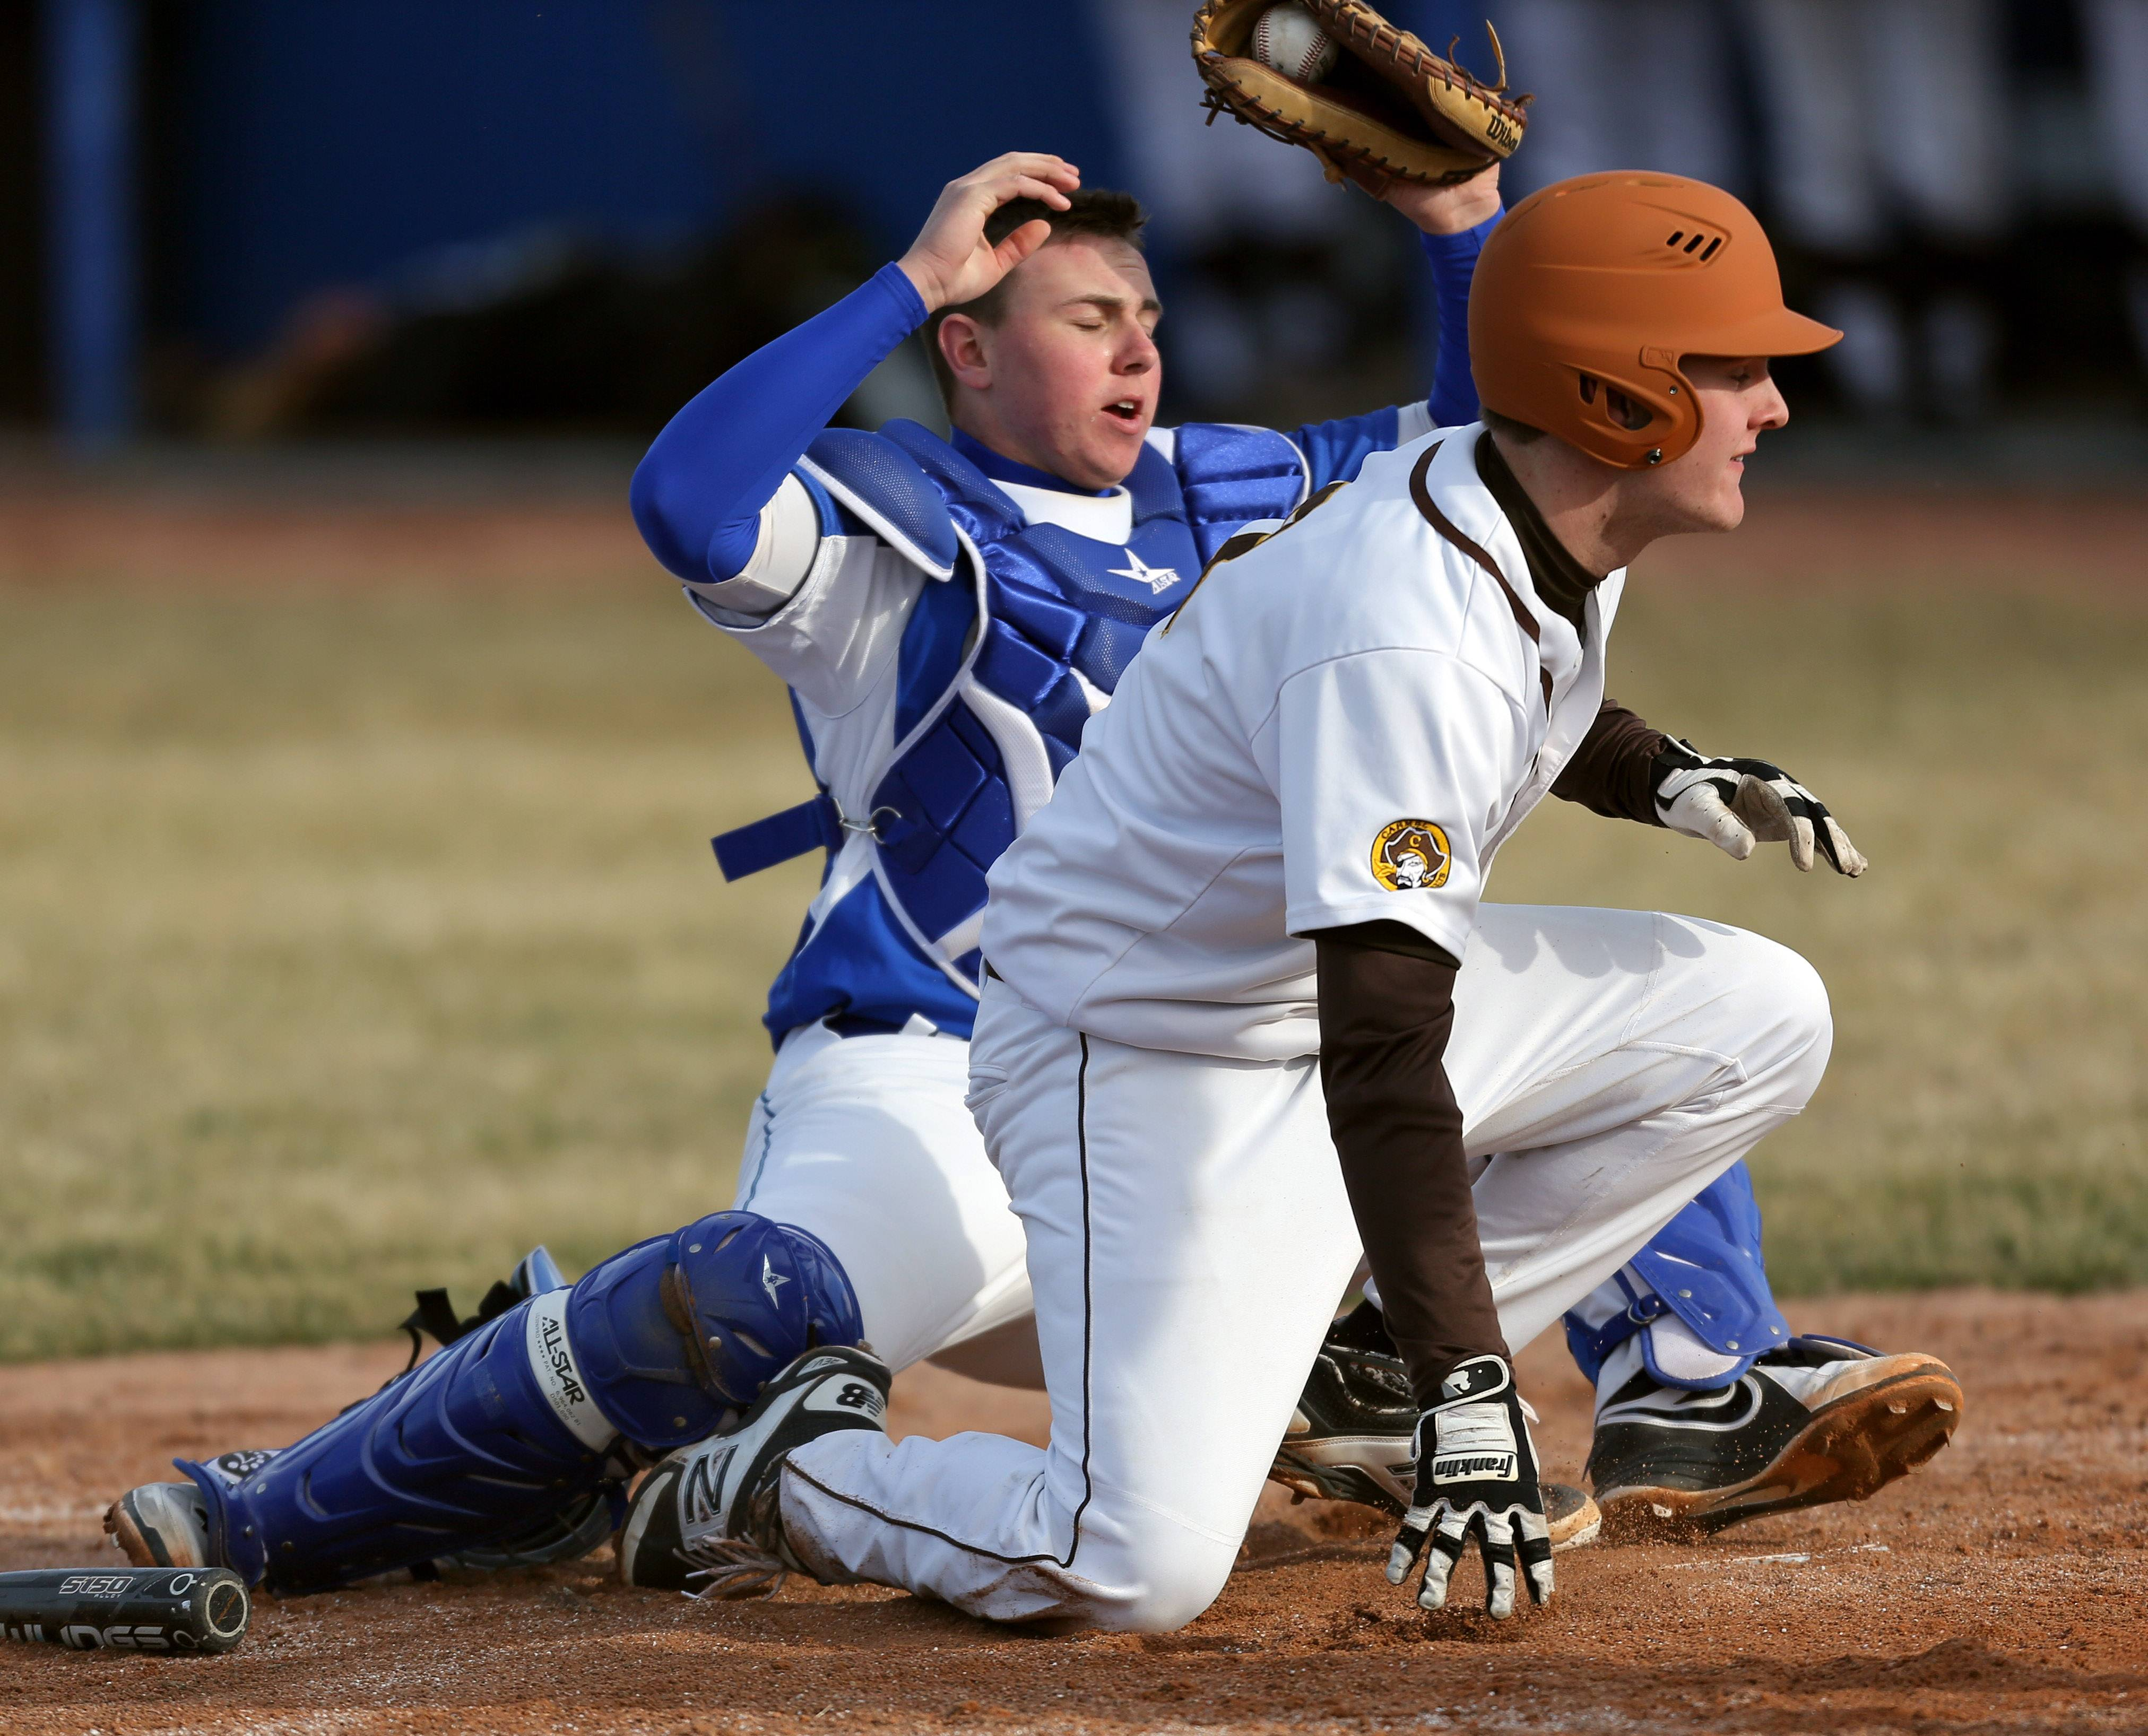 Carmel's Andrew Wienke, right, is safe at home after a collision with Warren catcher Andrew Nickell on Tuesday at Warren.